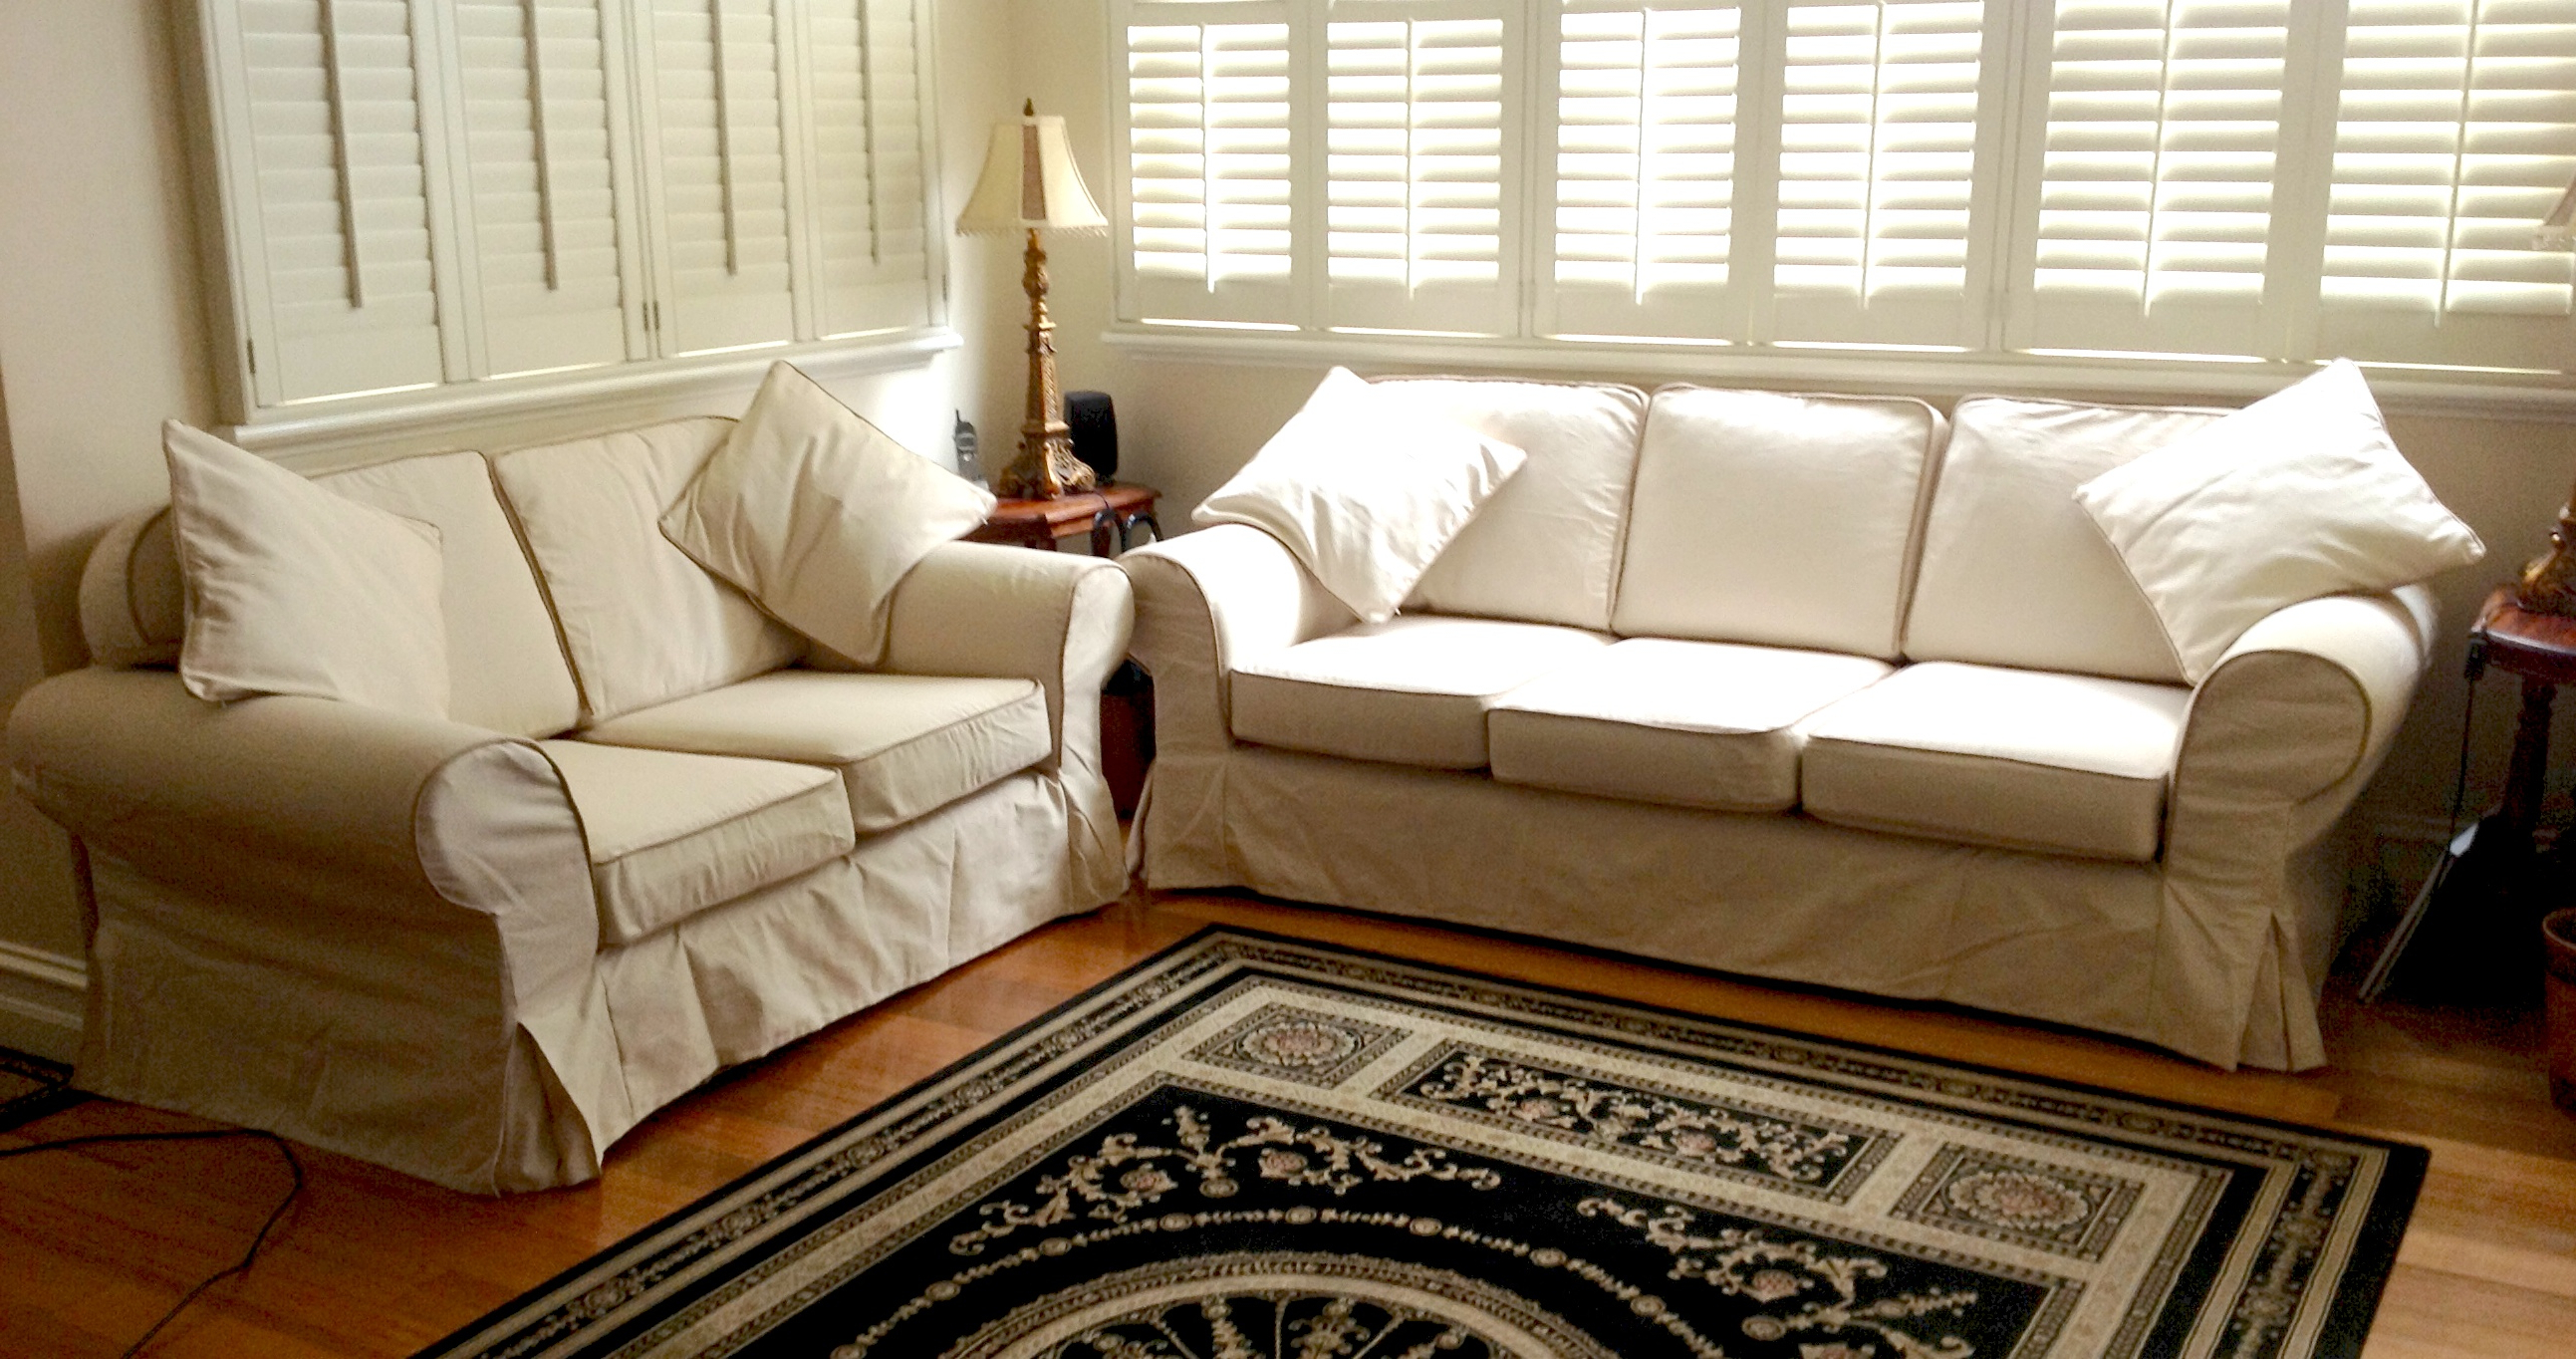 Latest Slipcovers For Sofas And Chairs For Custom Slipcovers And Couch Cover For Any Sofa Online (Gallery 5 of 20)